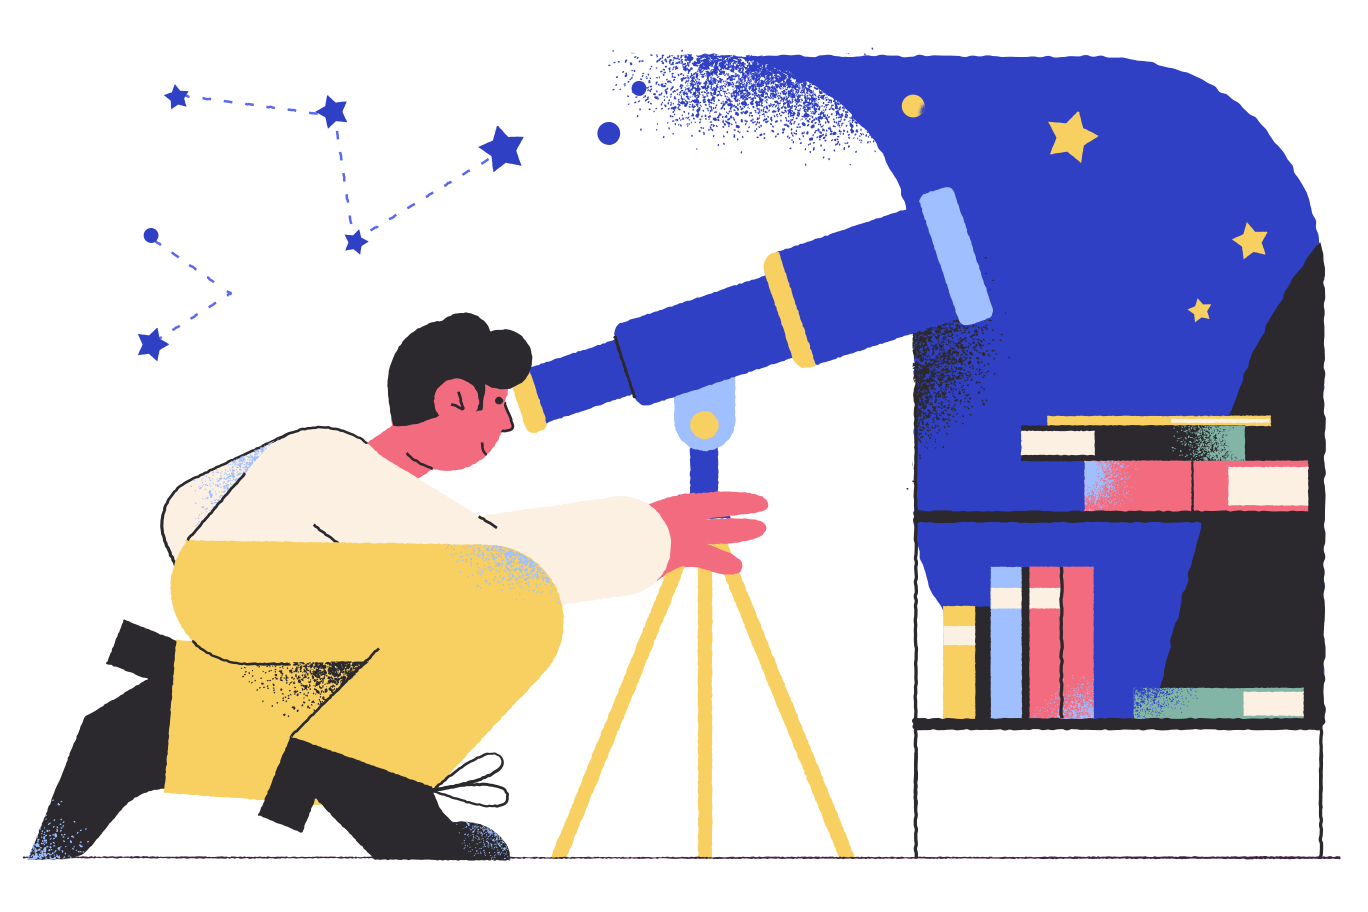 style Astronomer images in PNG and SVG | Icons8 Illustrations